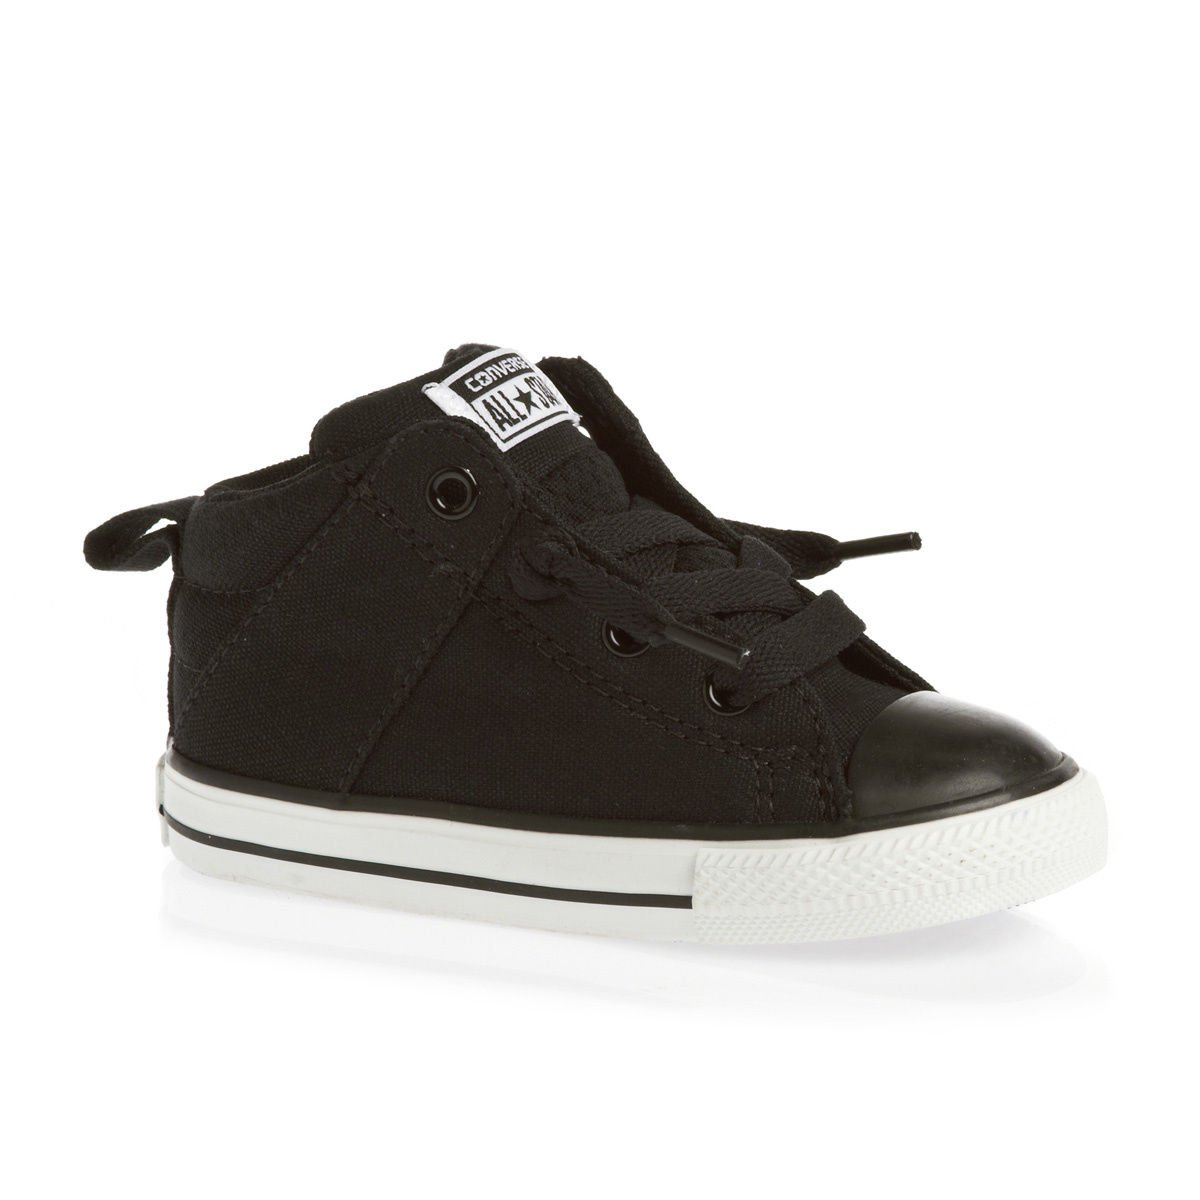 b052d8af0dfa40 Amazon.com  Converse Boys  Chuck Taylor All Star Axel Mid (Infant Toddler)   Shoes